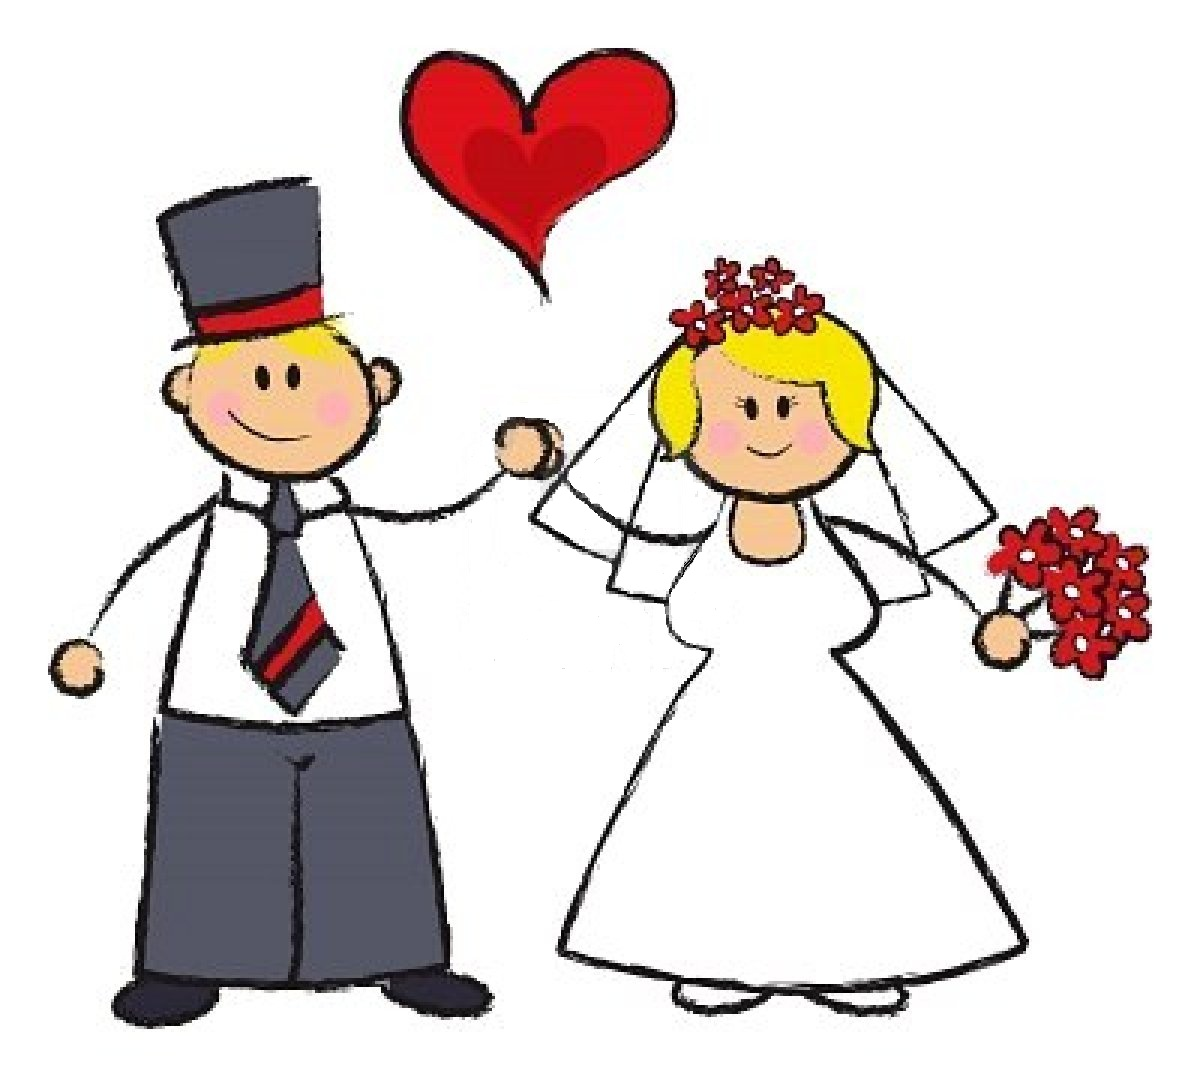 http://3.bp.blogspot.com/-vyY53HvSWdU/T4k1niPpu2I/AAAAAAAAC2c/Zha-OJDPBs0/s1600/1805263-ust-married--cartoon-illustration-of-a-wedding-couple-in-fair-skin-tone.jpg